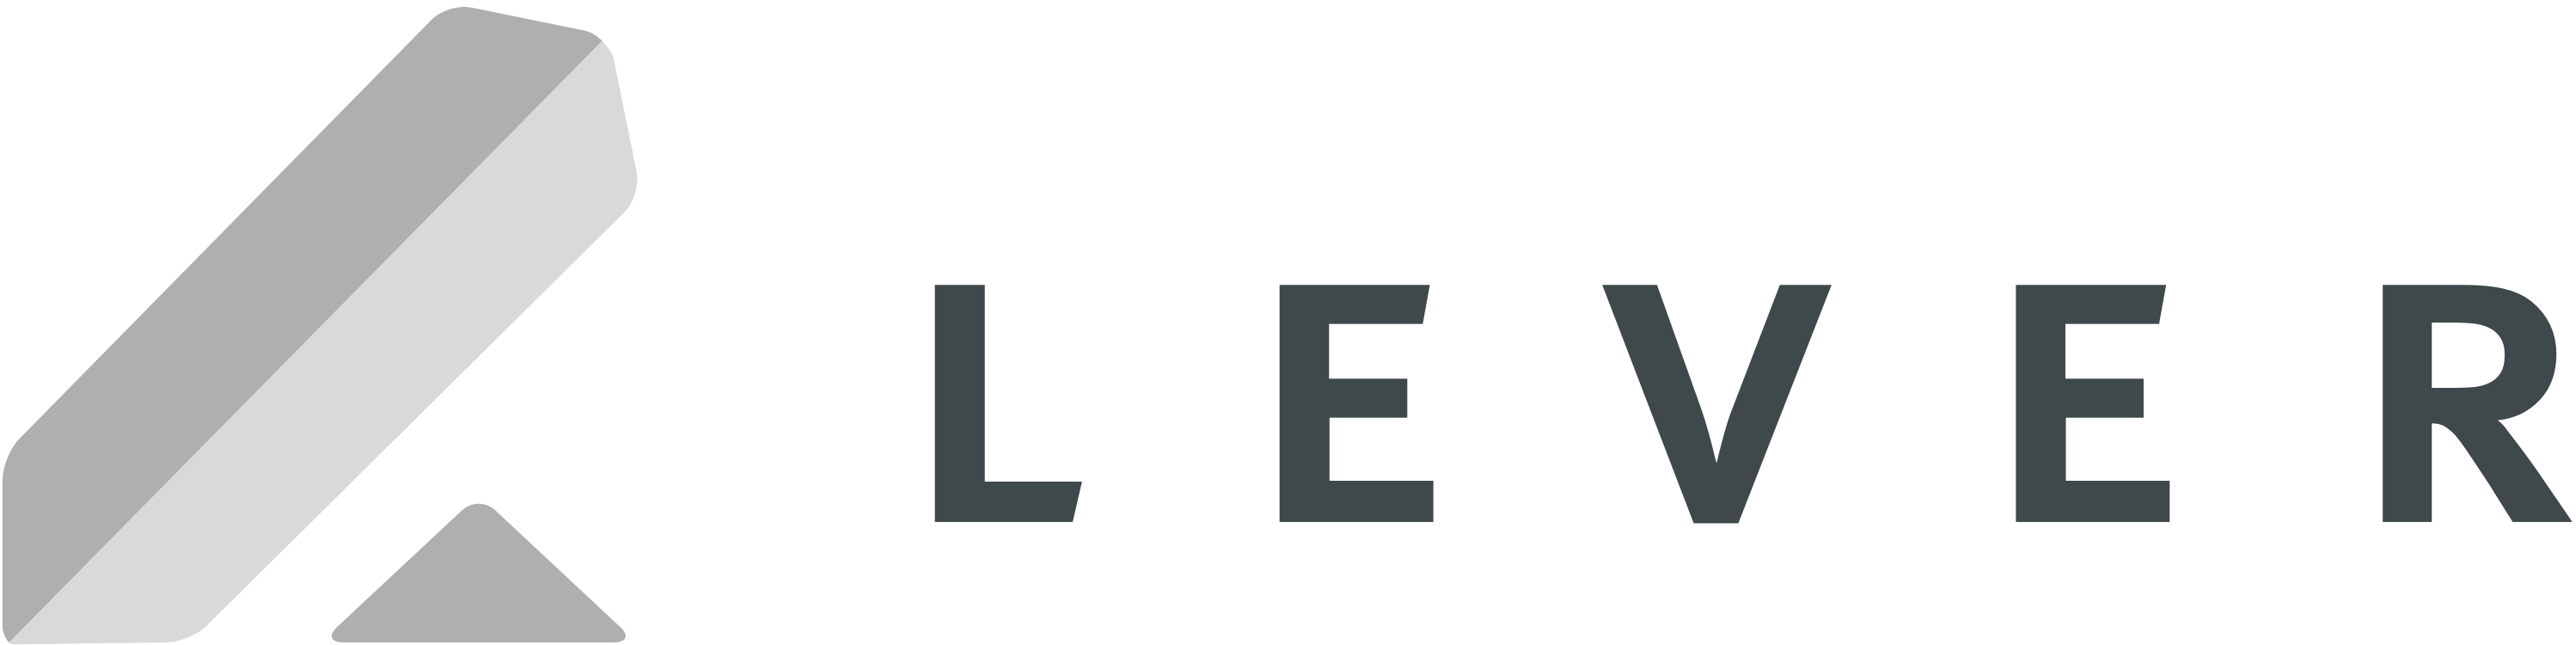 lever logo.png